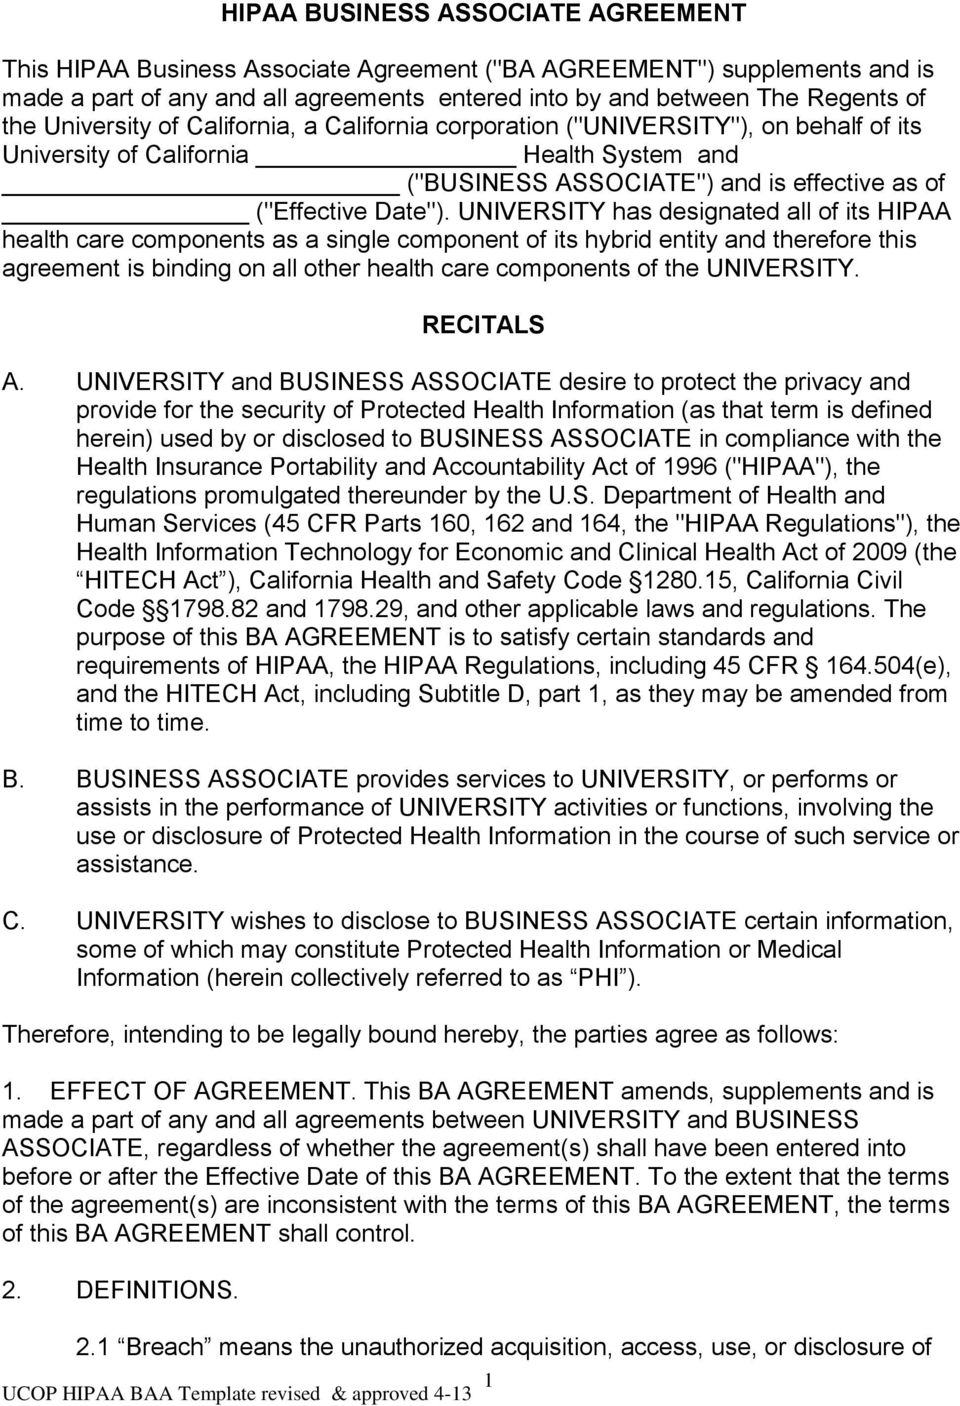 UNIVERSITY has designated all of its HIPAA health care components as a single component of its hybrid entity and therefore this agreement is binding on all other health care components of the